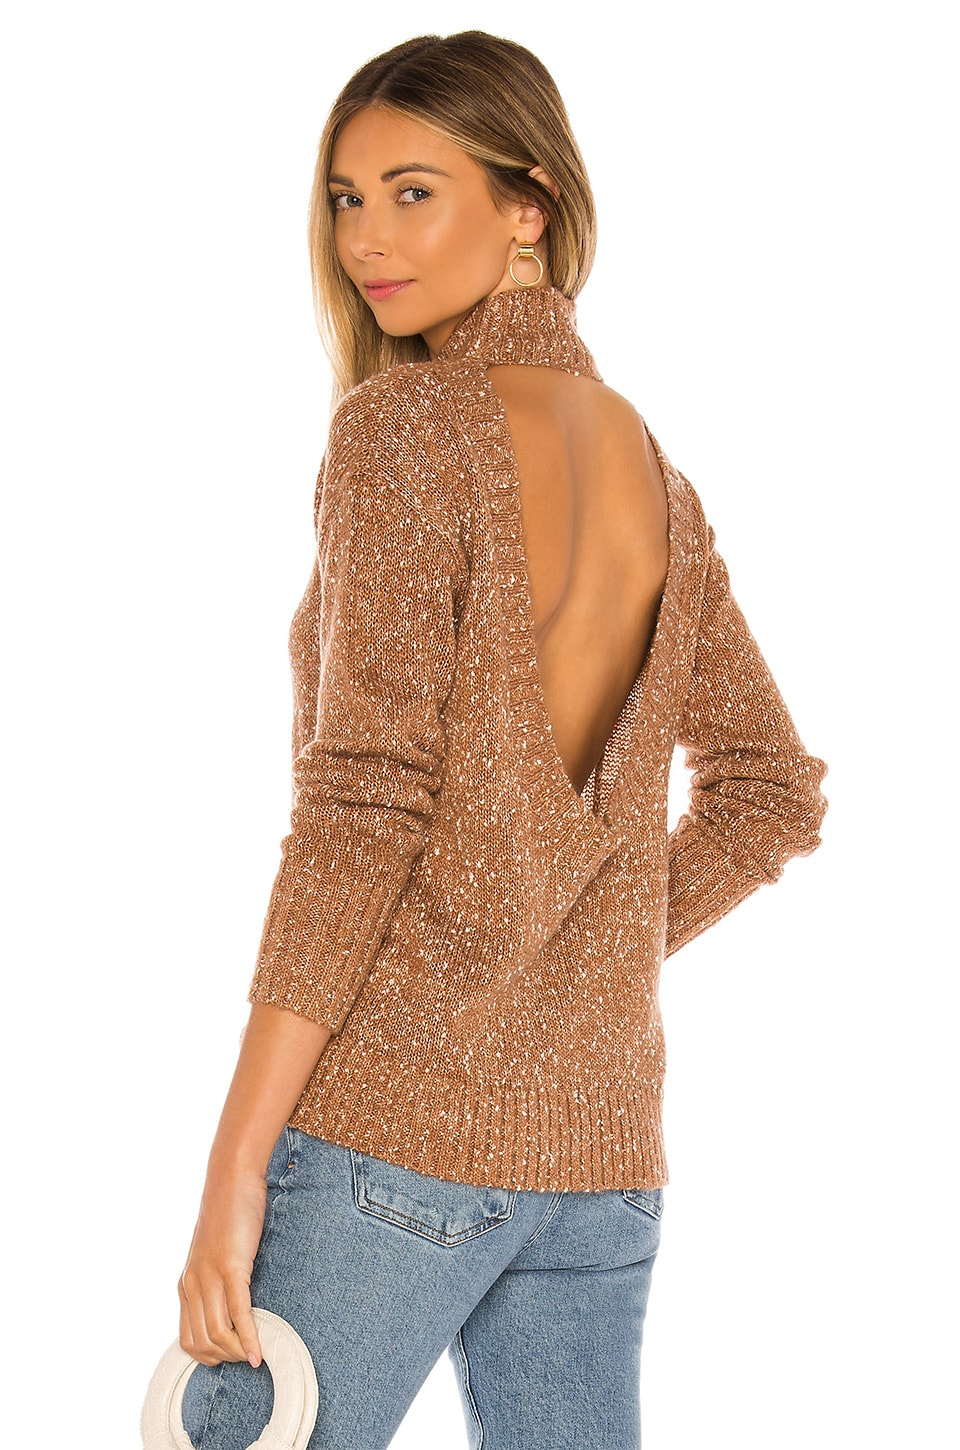 Tularosa Tash Sweater in Dijon